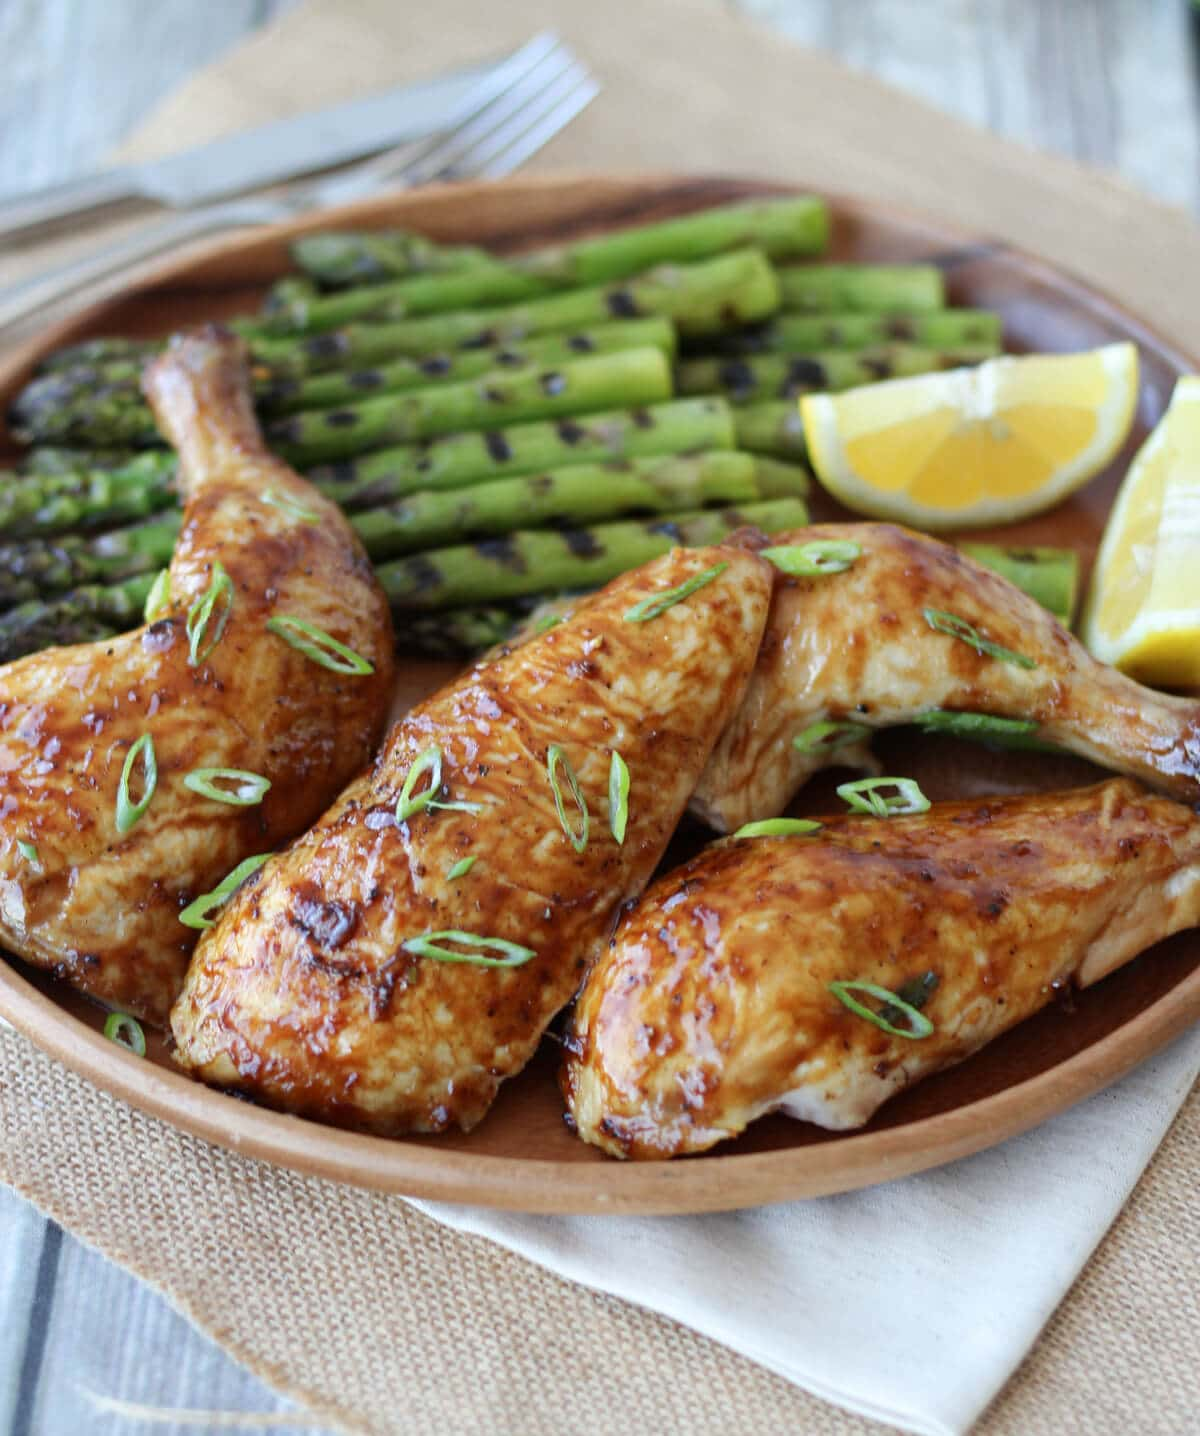 A brown plate with chicken and grilled asparagus.